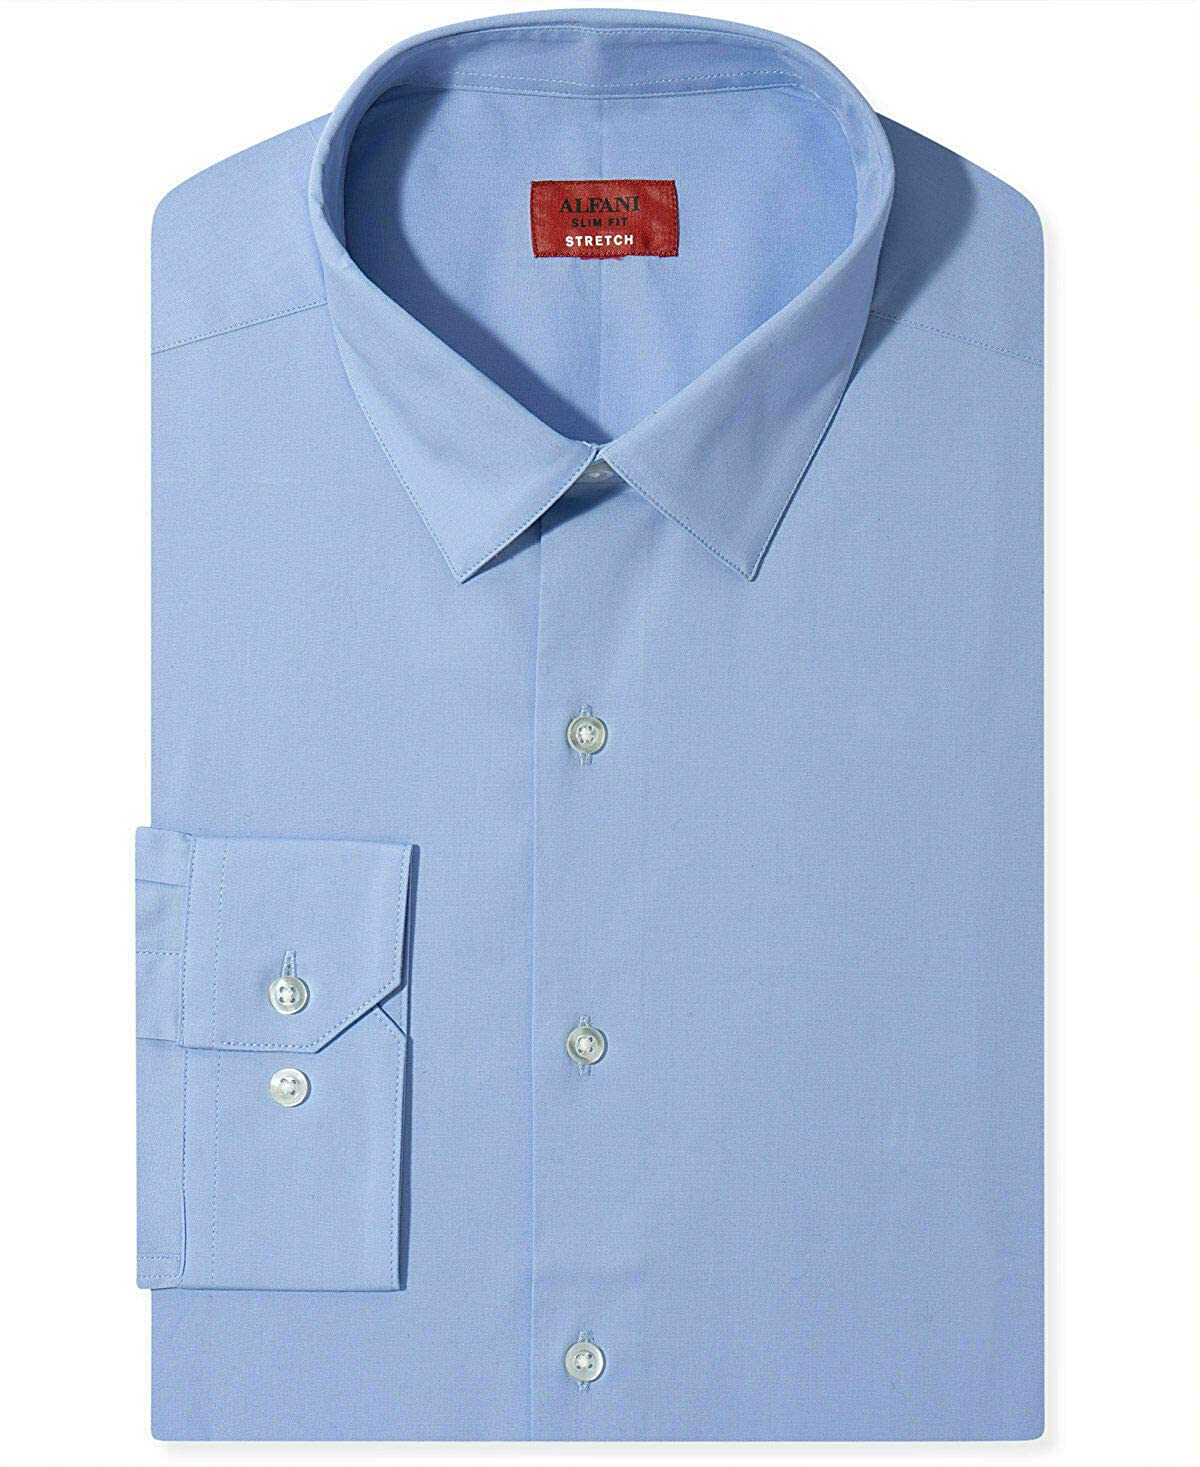 Alfani Mens Slim-Fit Button Up Dress Shirt